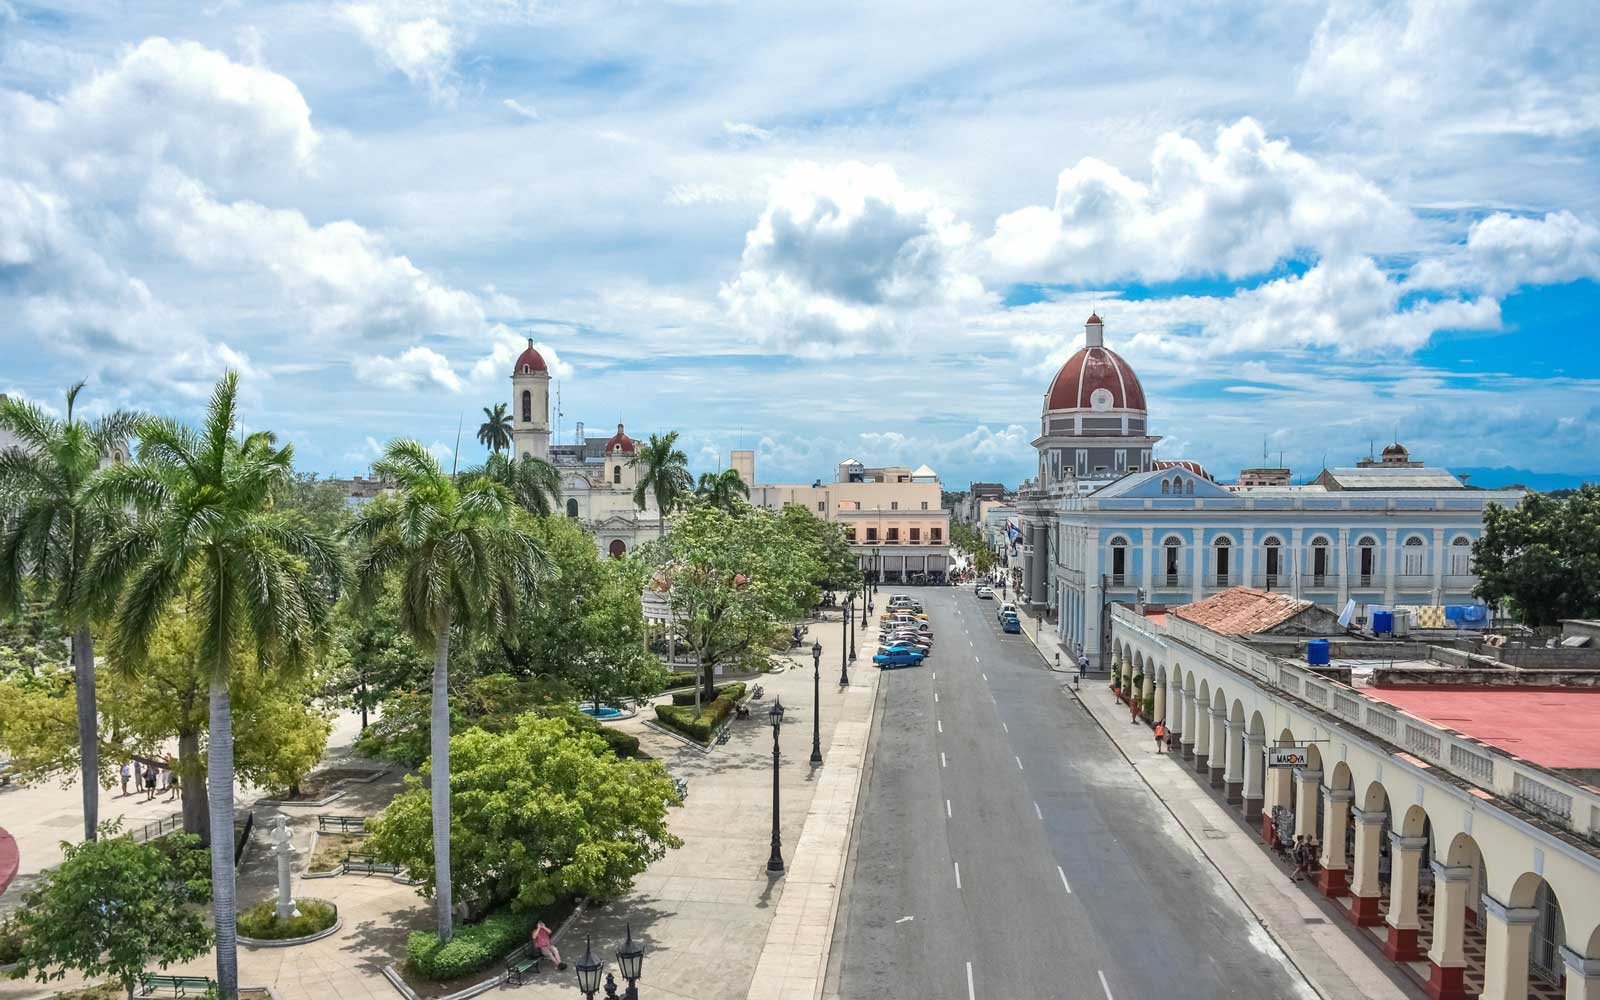 Save 33% off an 8-day Tour of Cuba